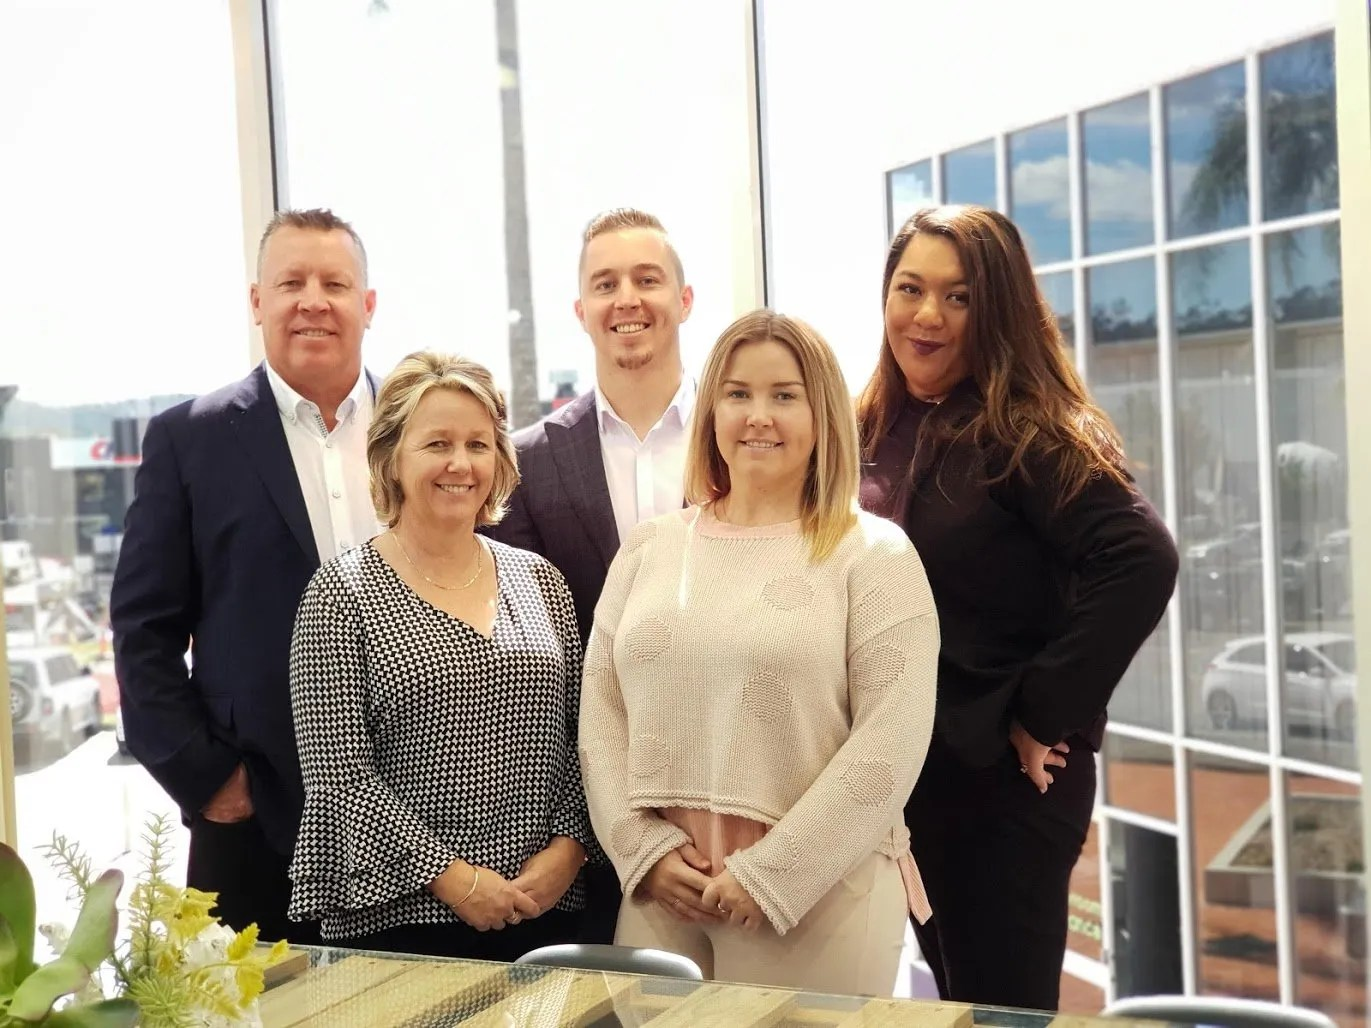 Join the Insurance Business' Number One Insurance Brokerage of 2018